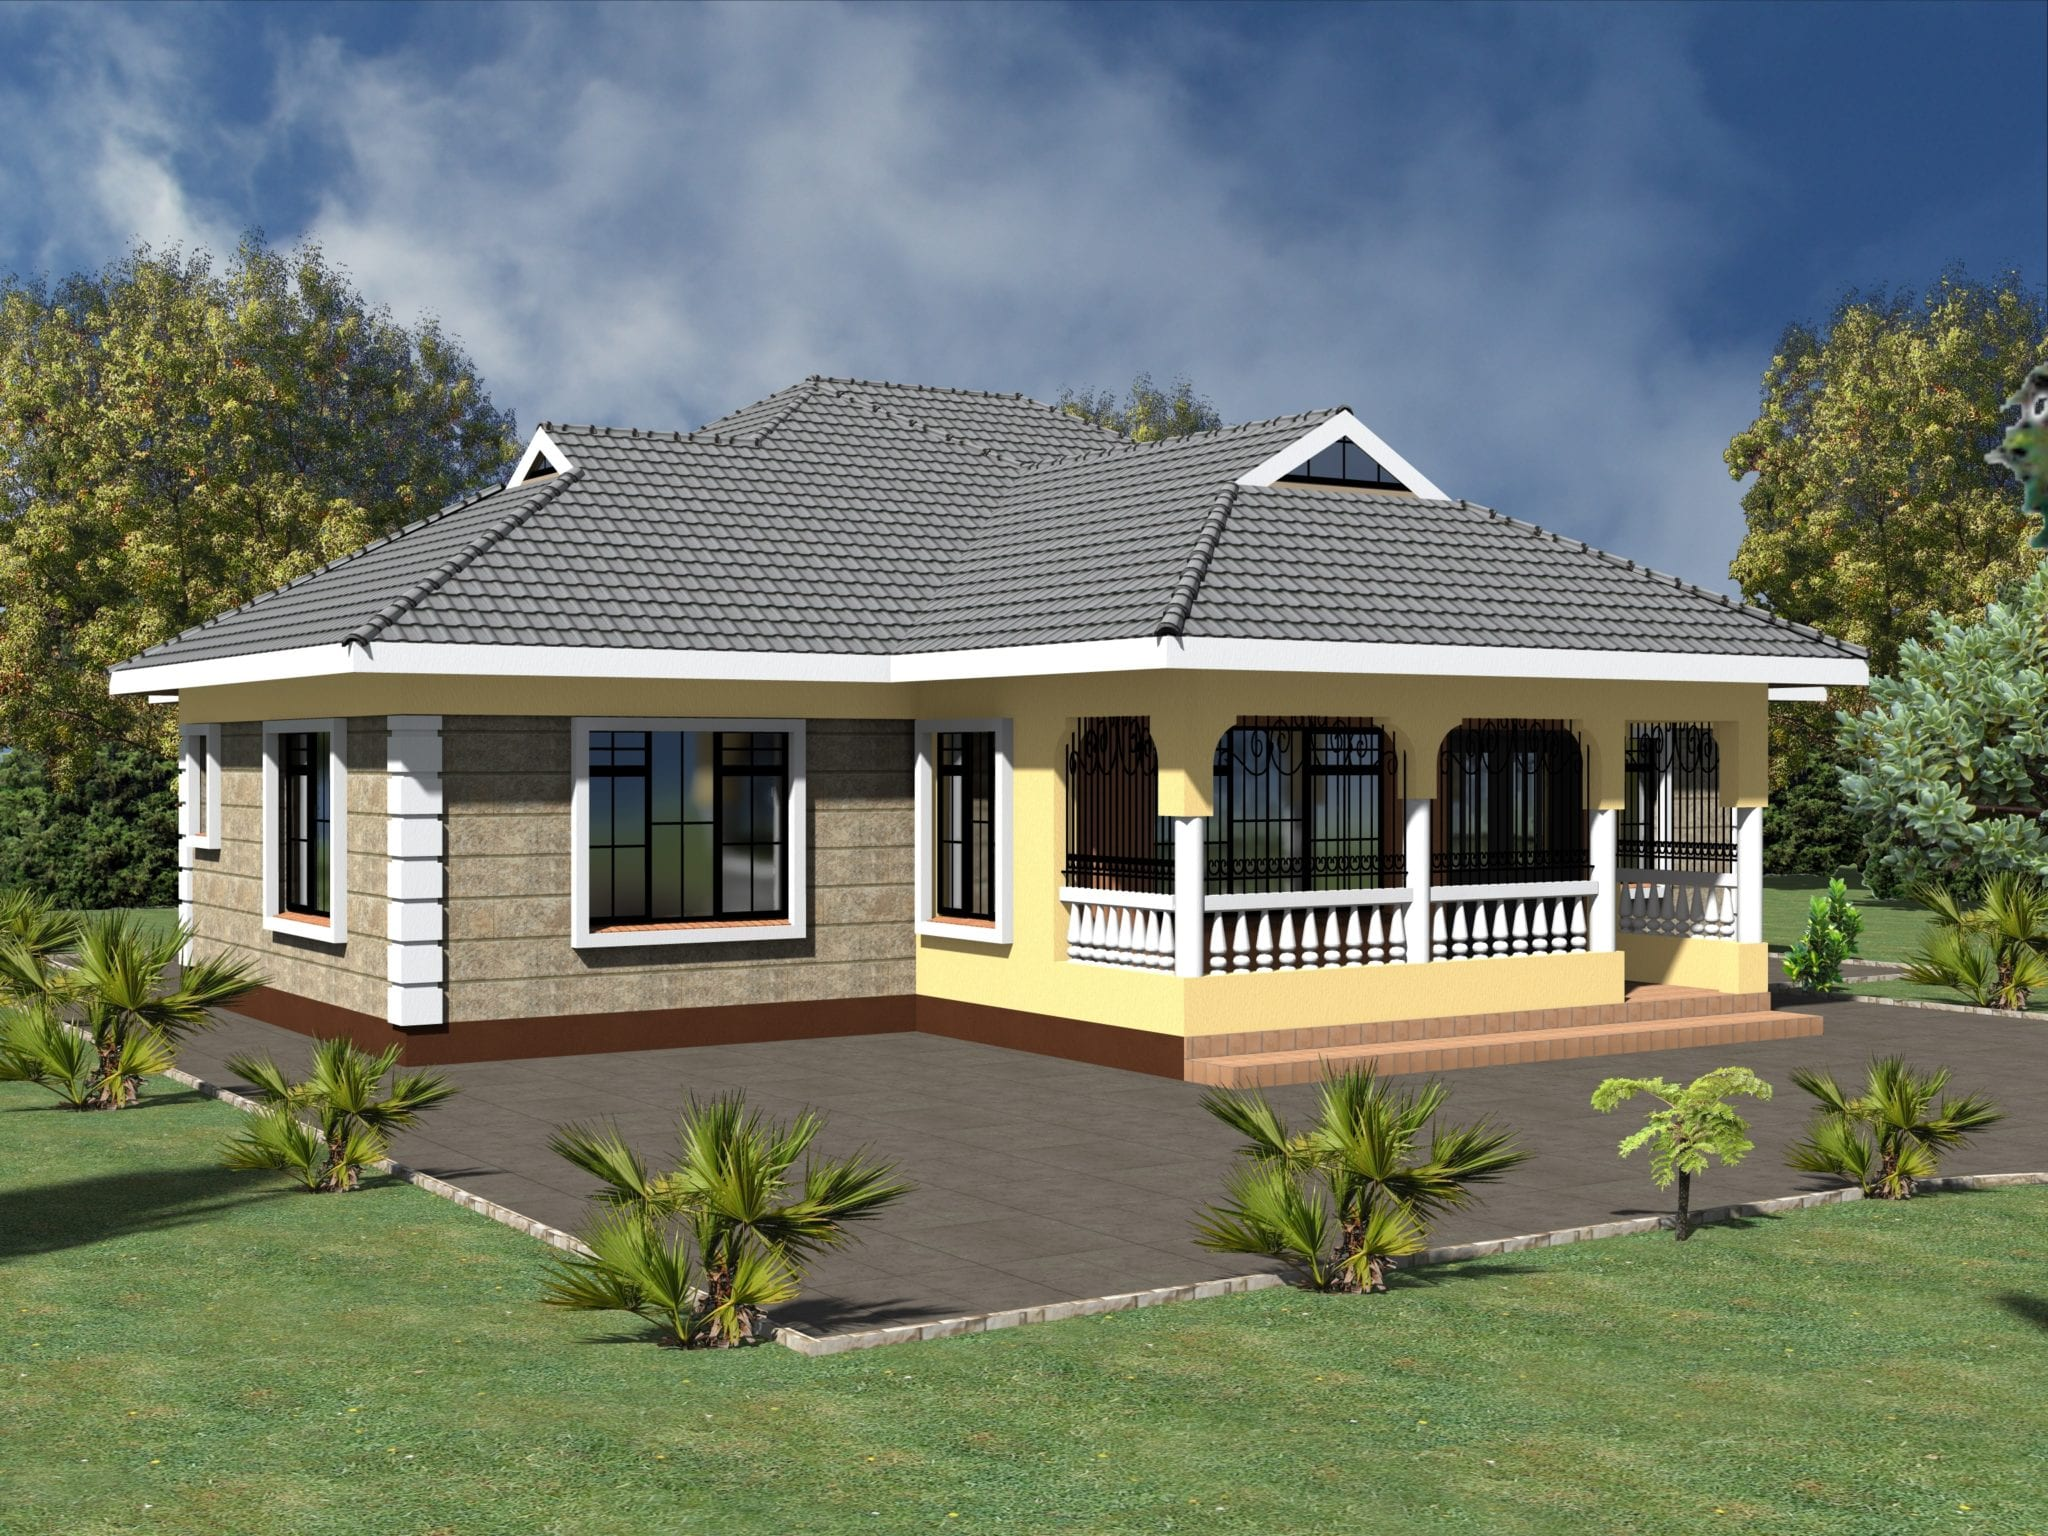 3 bedroom floor plans with garage simple 3 bedroom house plans without garage hpd consult 5504